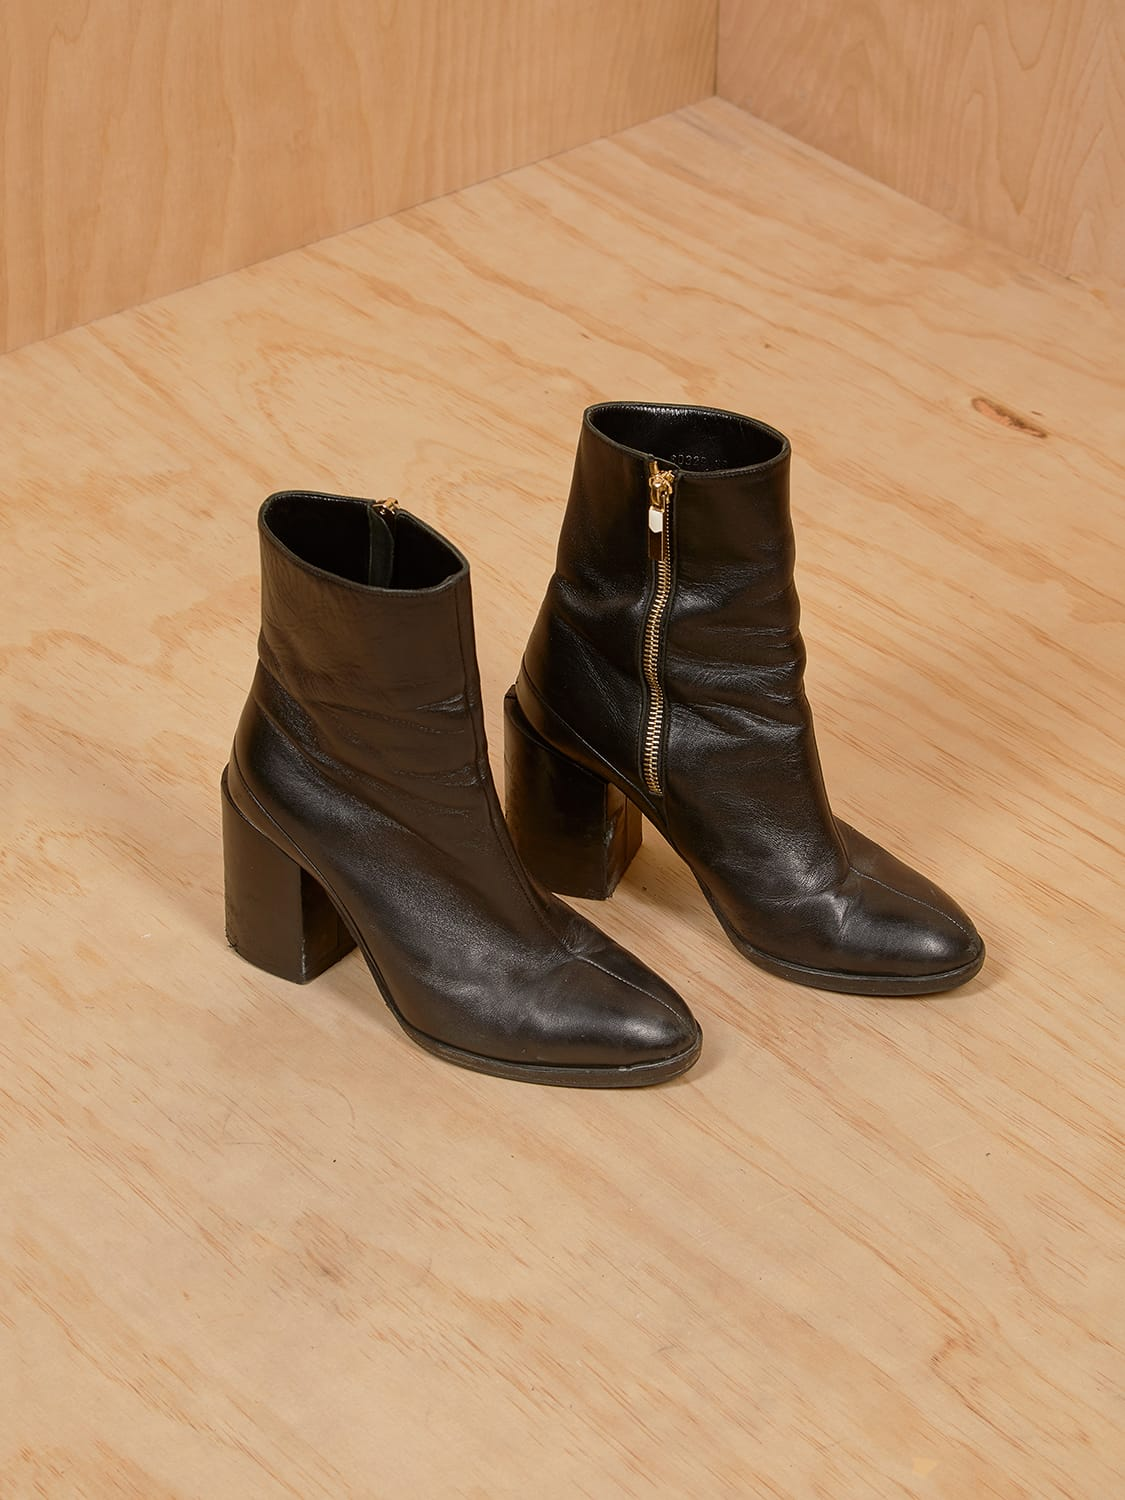 Vero Cucio Black Leather Booties